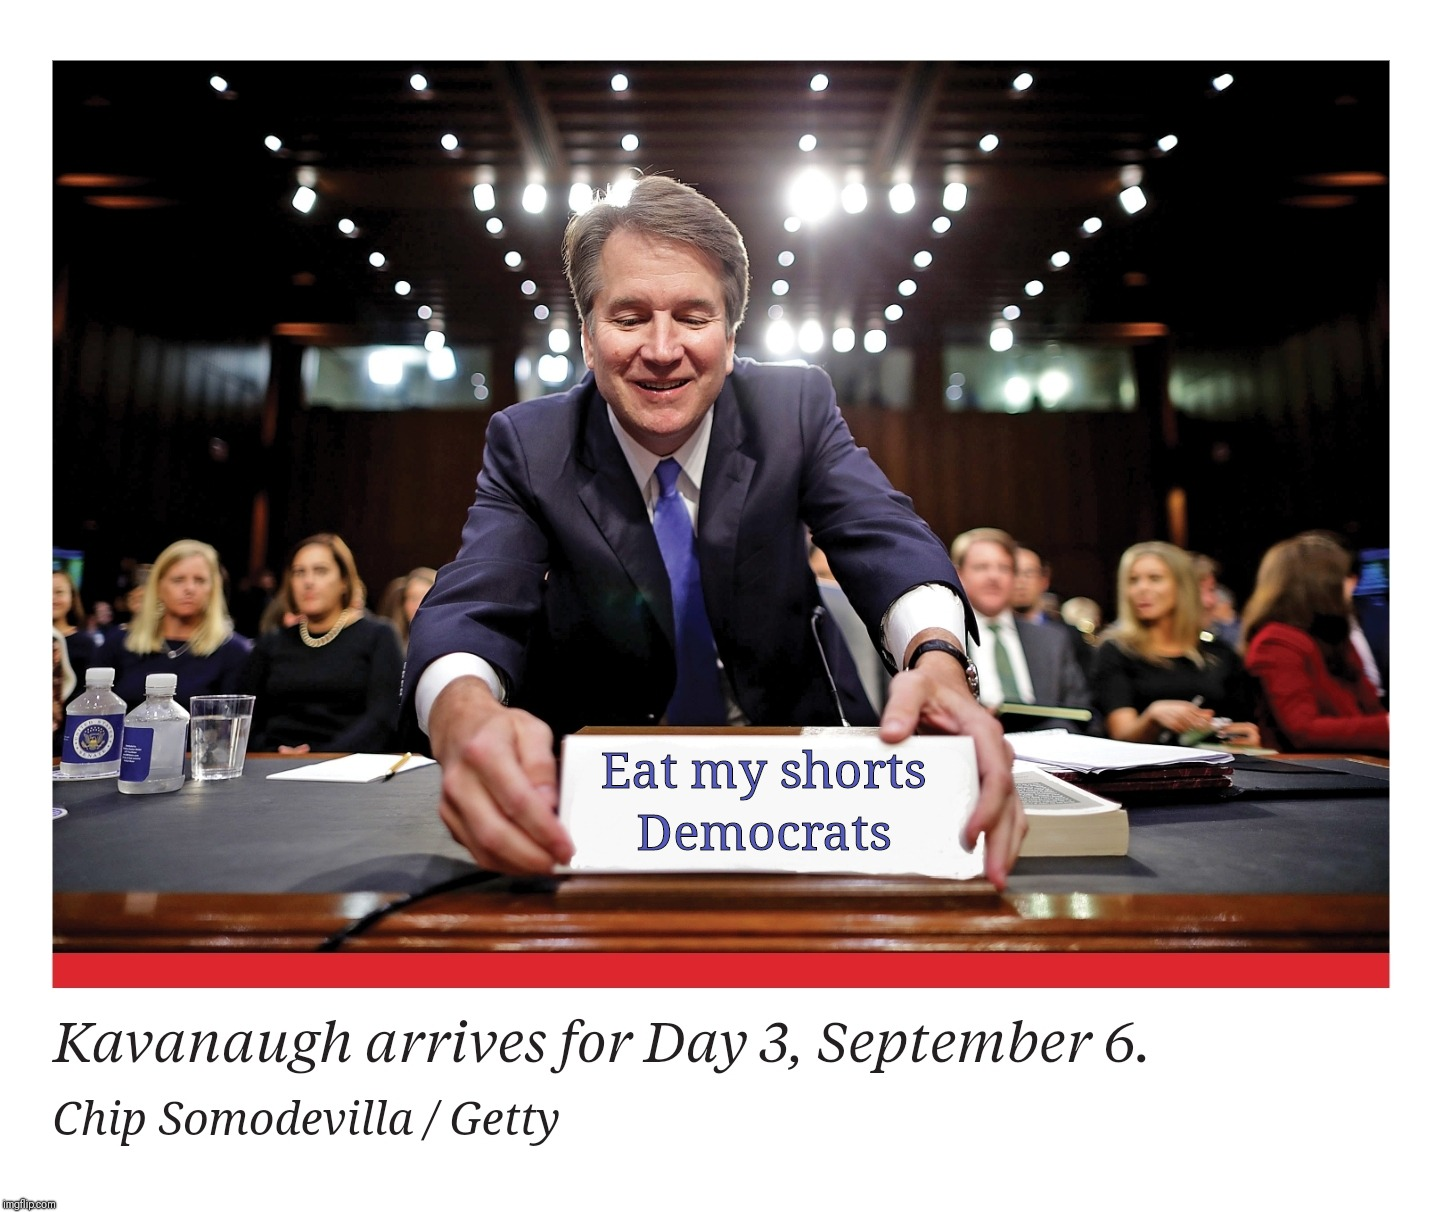 Who doesn't love a good Supreme Court confirmation battle? | Eat my shorts Democrats | image tagged in kavanaugh arrives,politics,supreme court,political meme,democrats,sorry not sorry | made w/ Imgflip meme maker